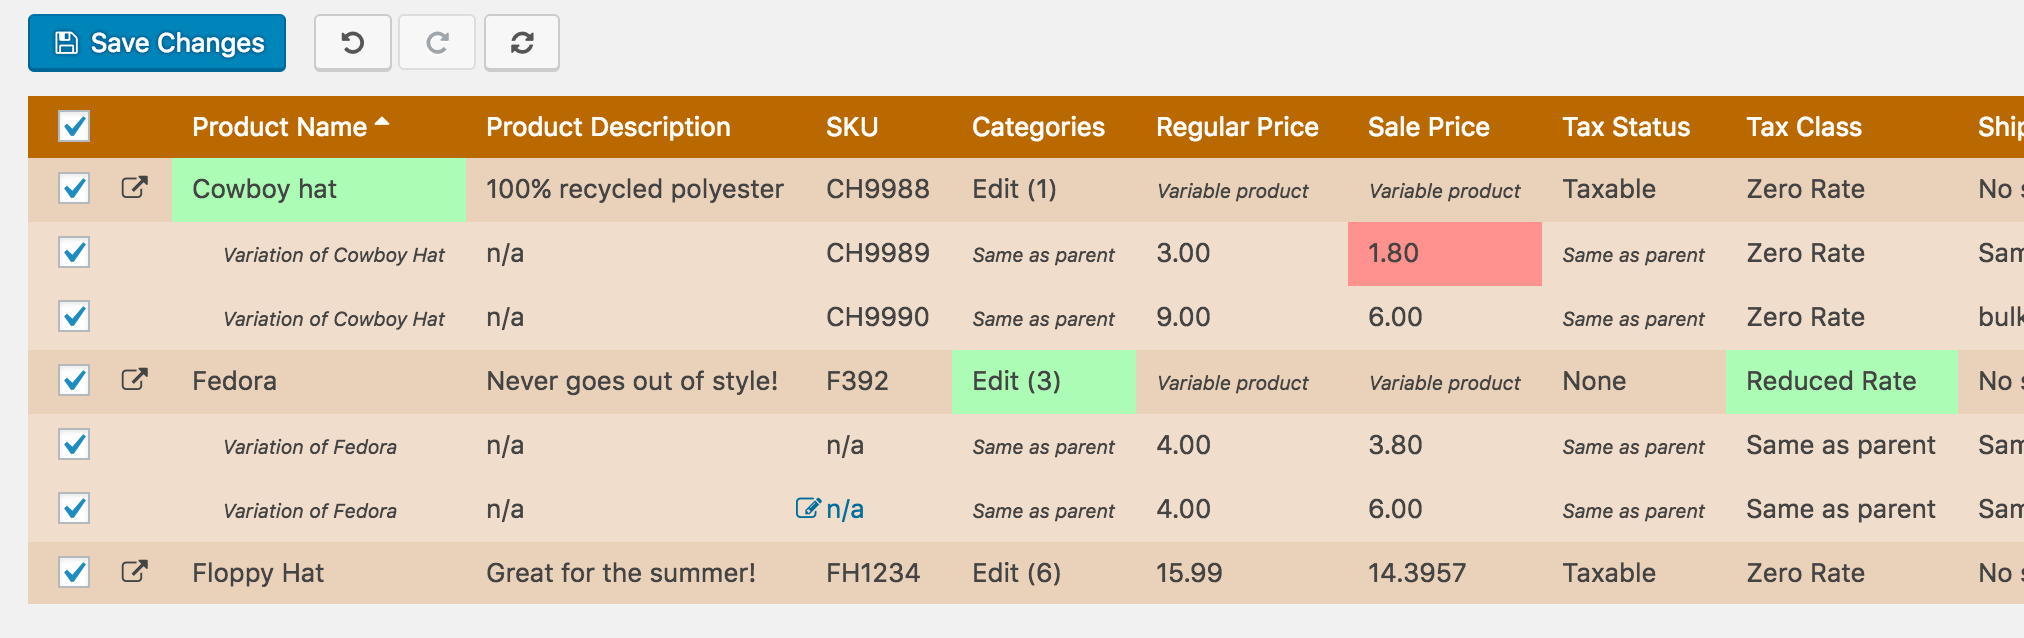 Preview all changes before saving. Price drops highlight in red to give you confidence in your changes!